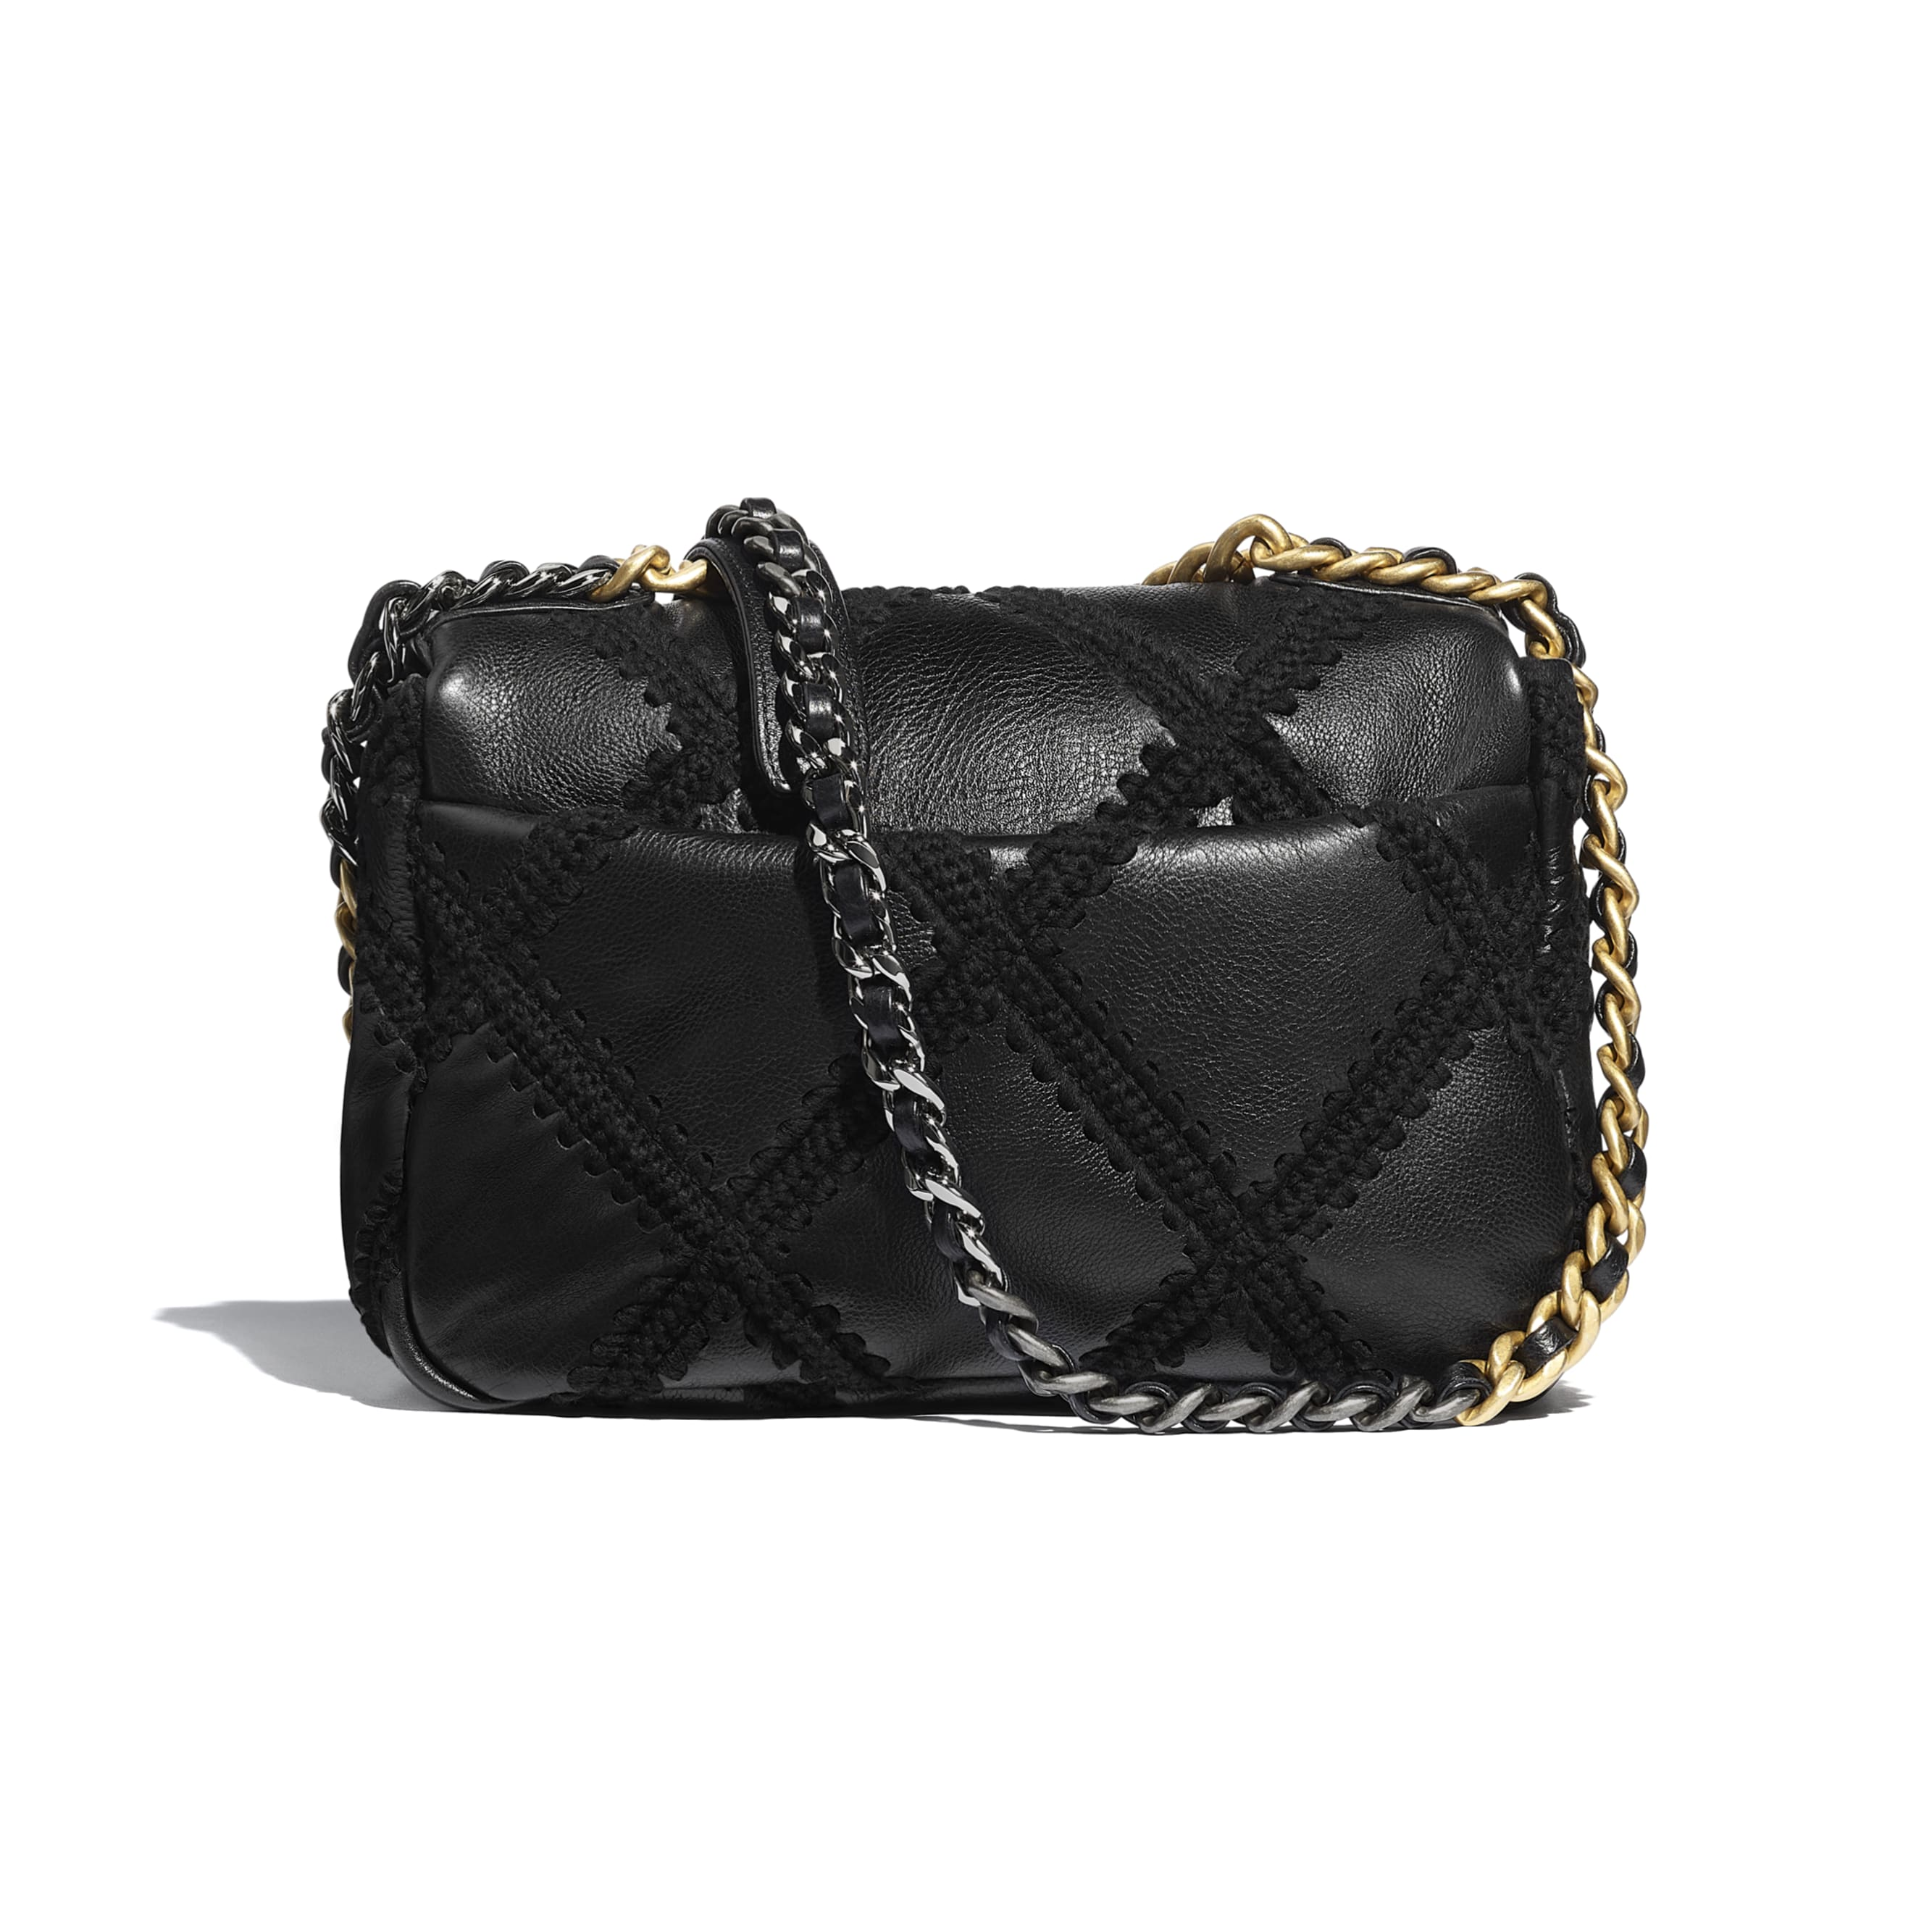 CHANEL 19 Flap Bag - Black - Calfskin, Crochet, Gold-Tone, Silver-Tone & Ruthenium-Finish Metal - CHANEL - Alternative view - see standard sized version